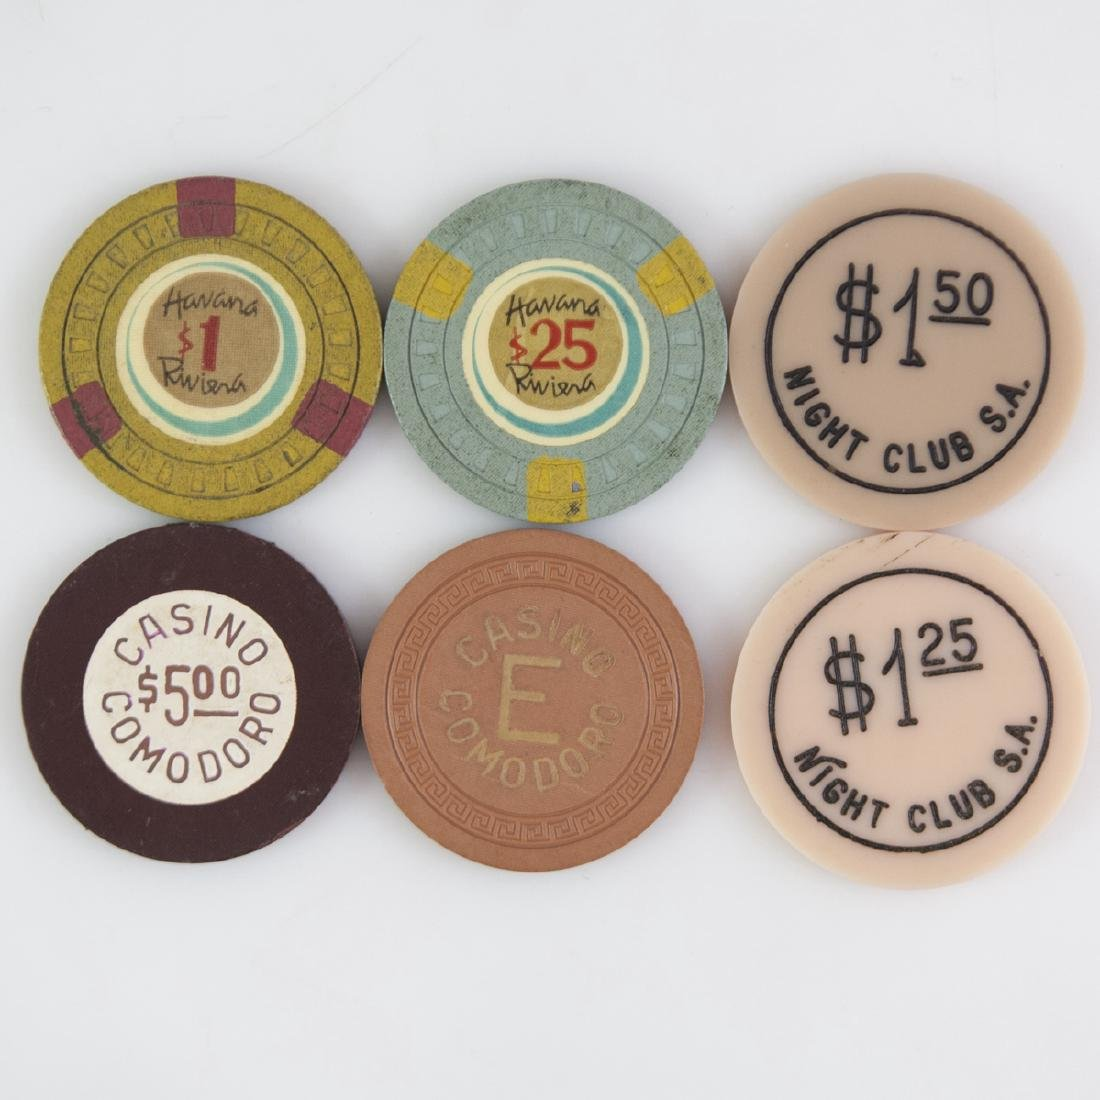 Vintage Poker Chip Collection